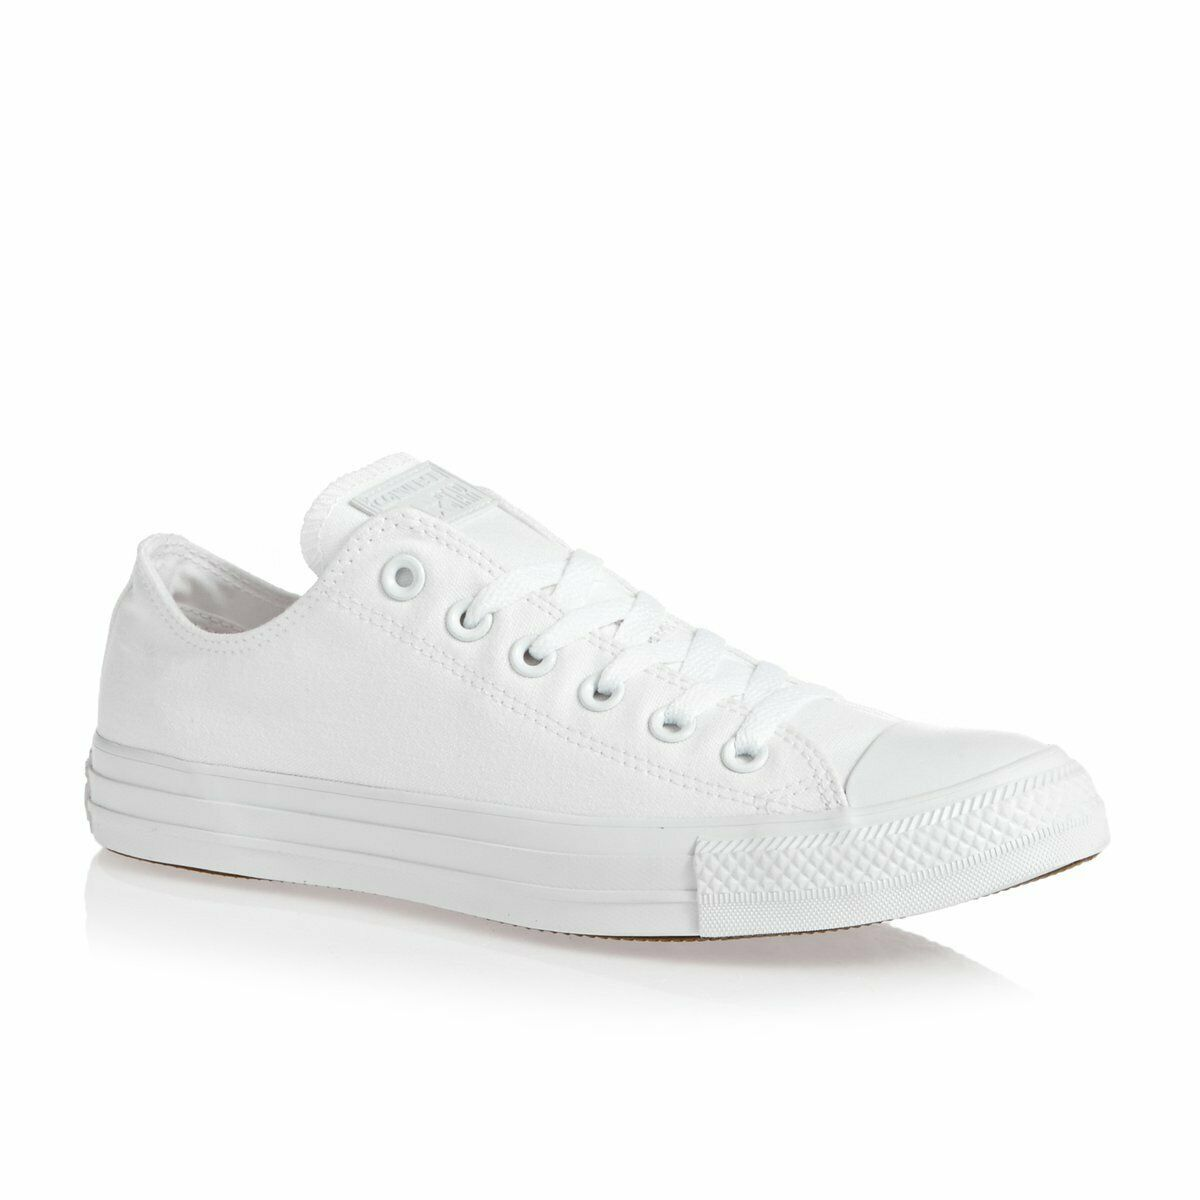 4ae6bcee395a2 Converse All Star ox Canvas Womens Trainers White Mono Size 5 UK ...